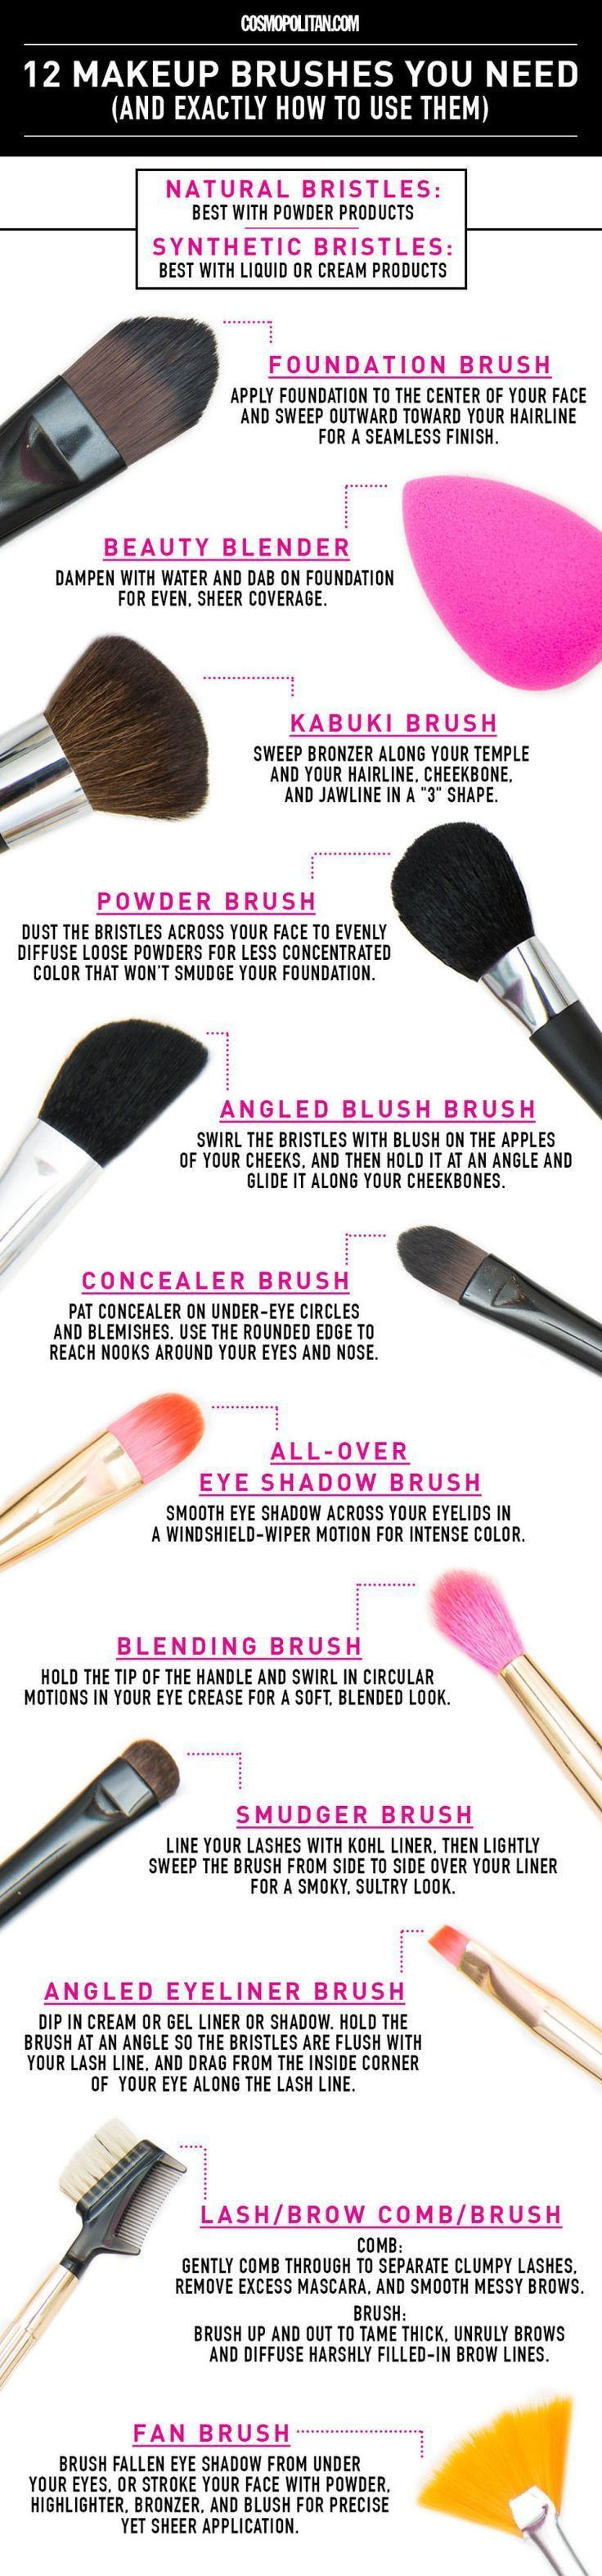 Photo of THE BEST MAKEUP BRUSHES  GUIDE: Cosmopolitan.com rounded up the best and most he…